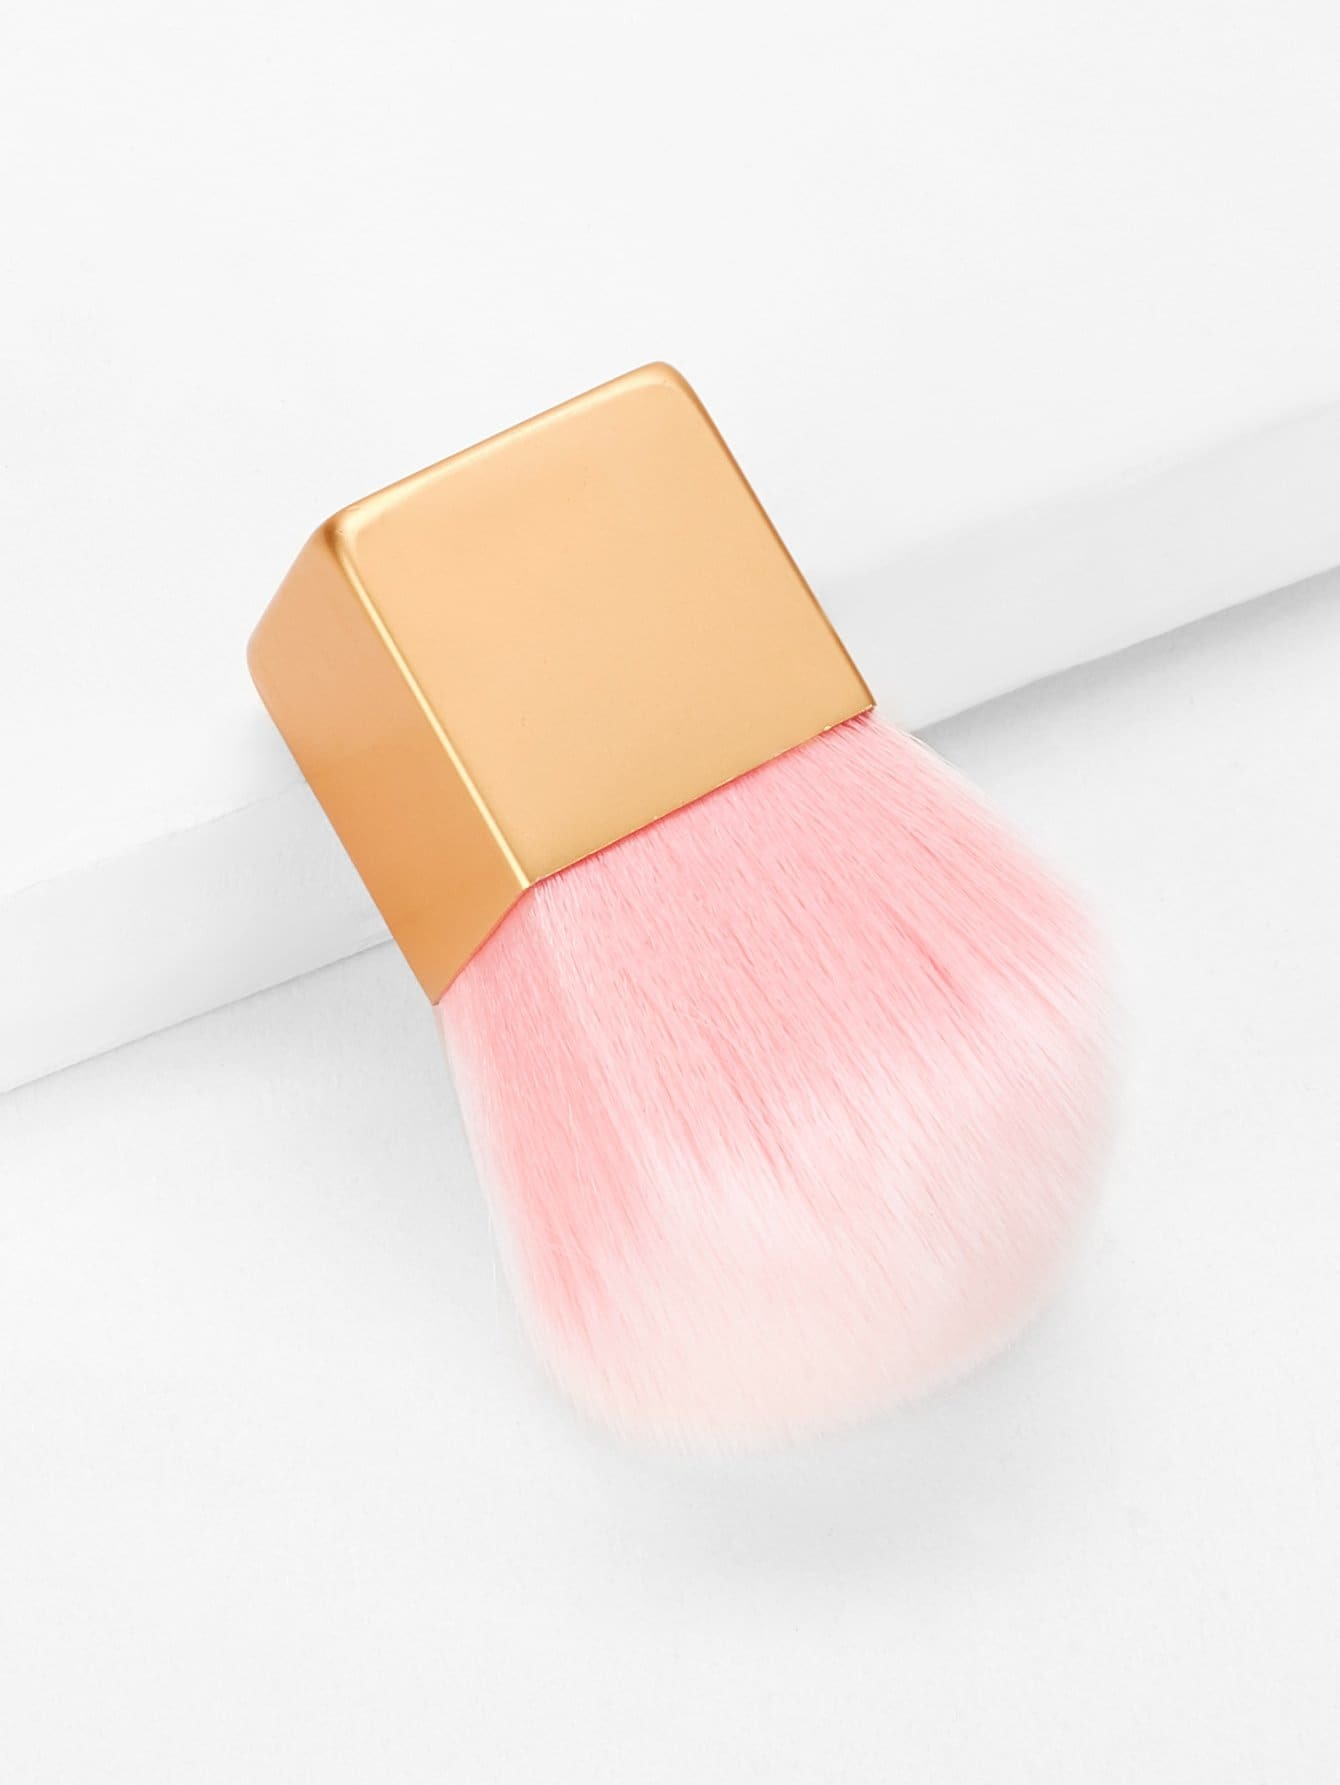 Soft Makeup Brush 1pc